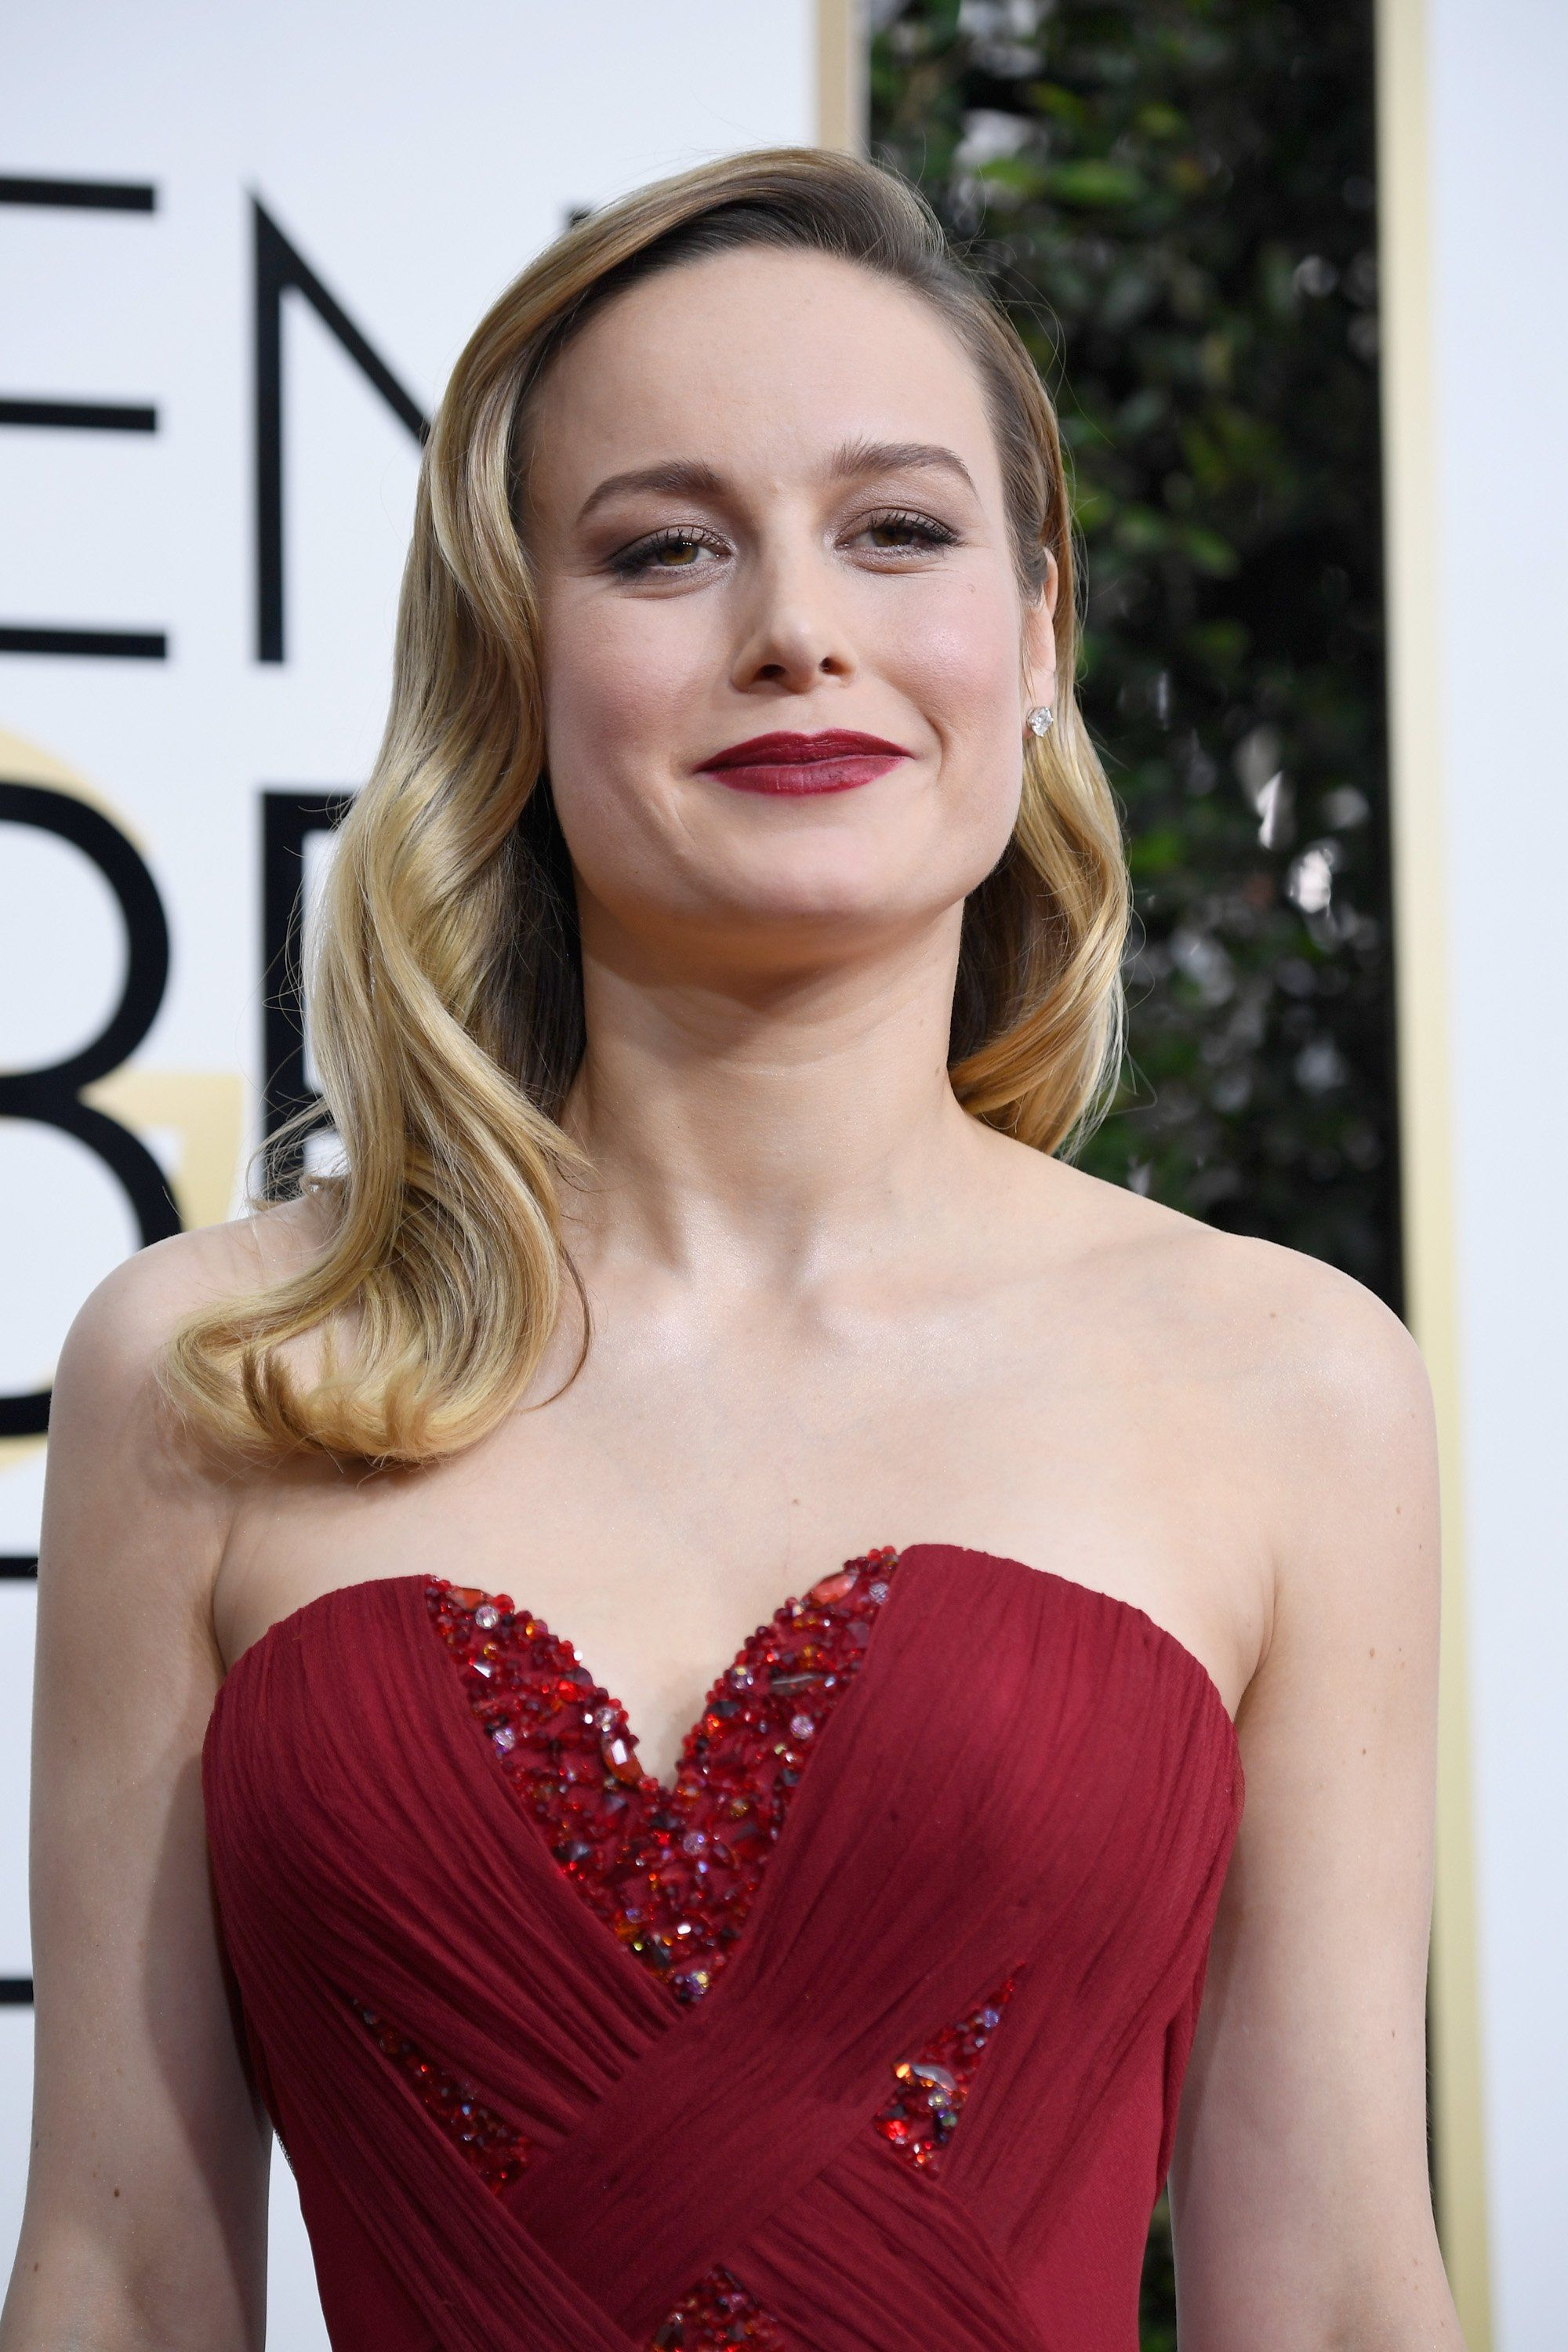 Brie Larson Braless. 2018-2019 celebrityes photos leaks! - 2019 year